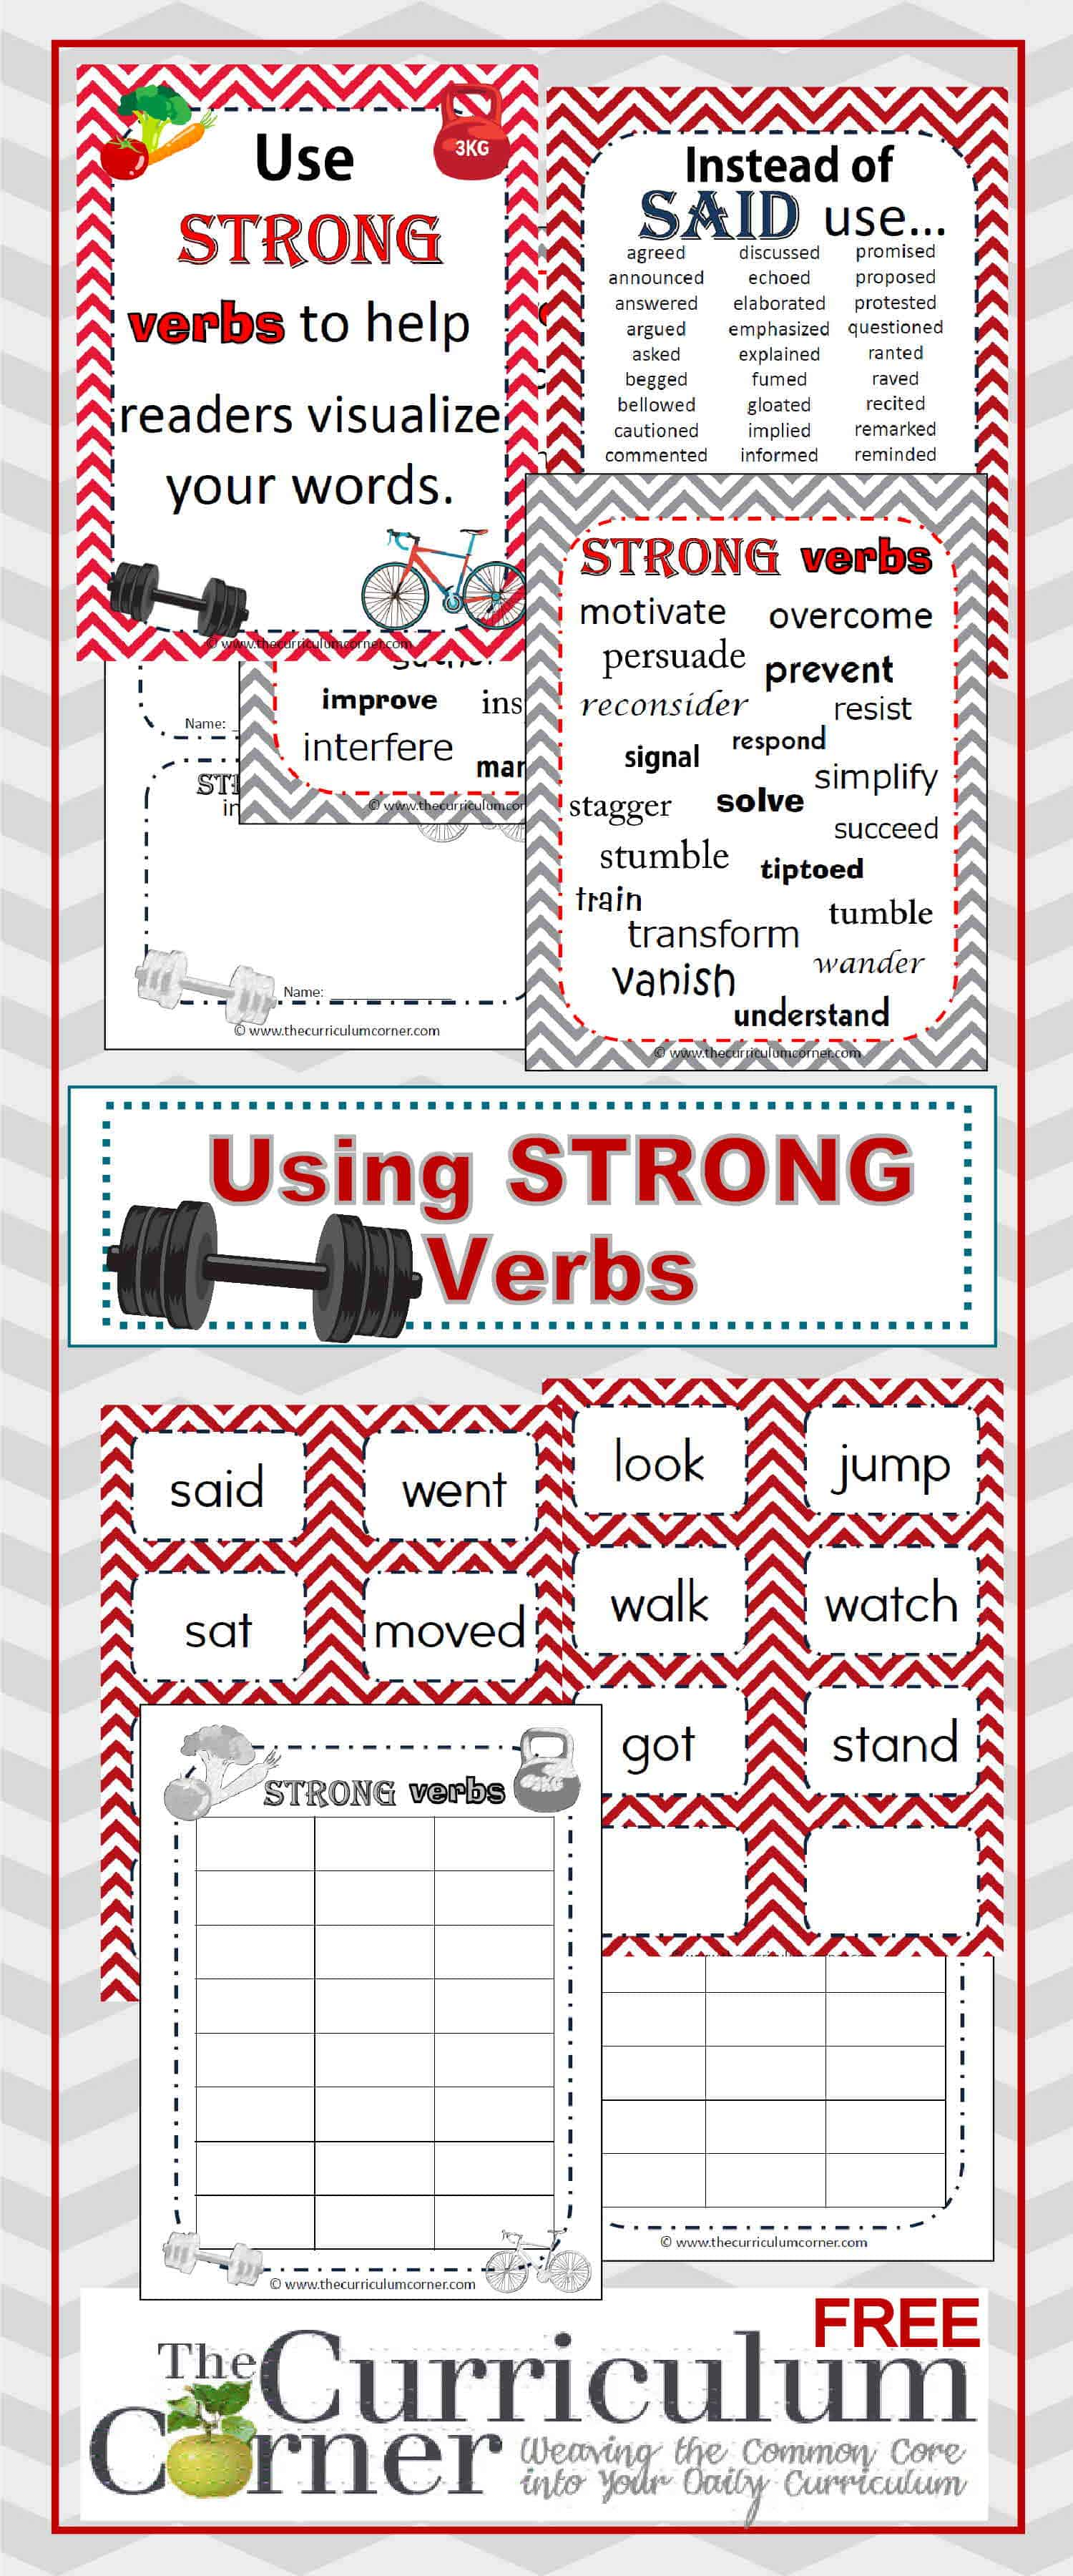 list of strong verbs for essays Rhetorical analysis: power verbs (adapted from list compiled by m lee, woodward academy and v stevenson, patrick henry high, 2005) summarizing, rather than analyzing, is one of the chief pitfalls of ap.